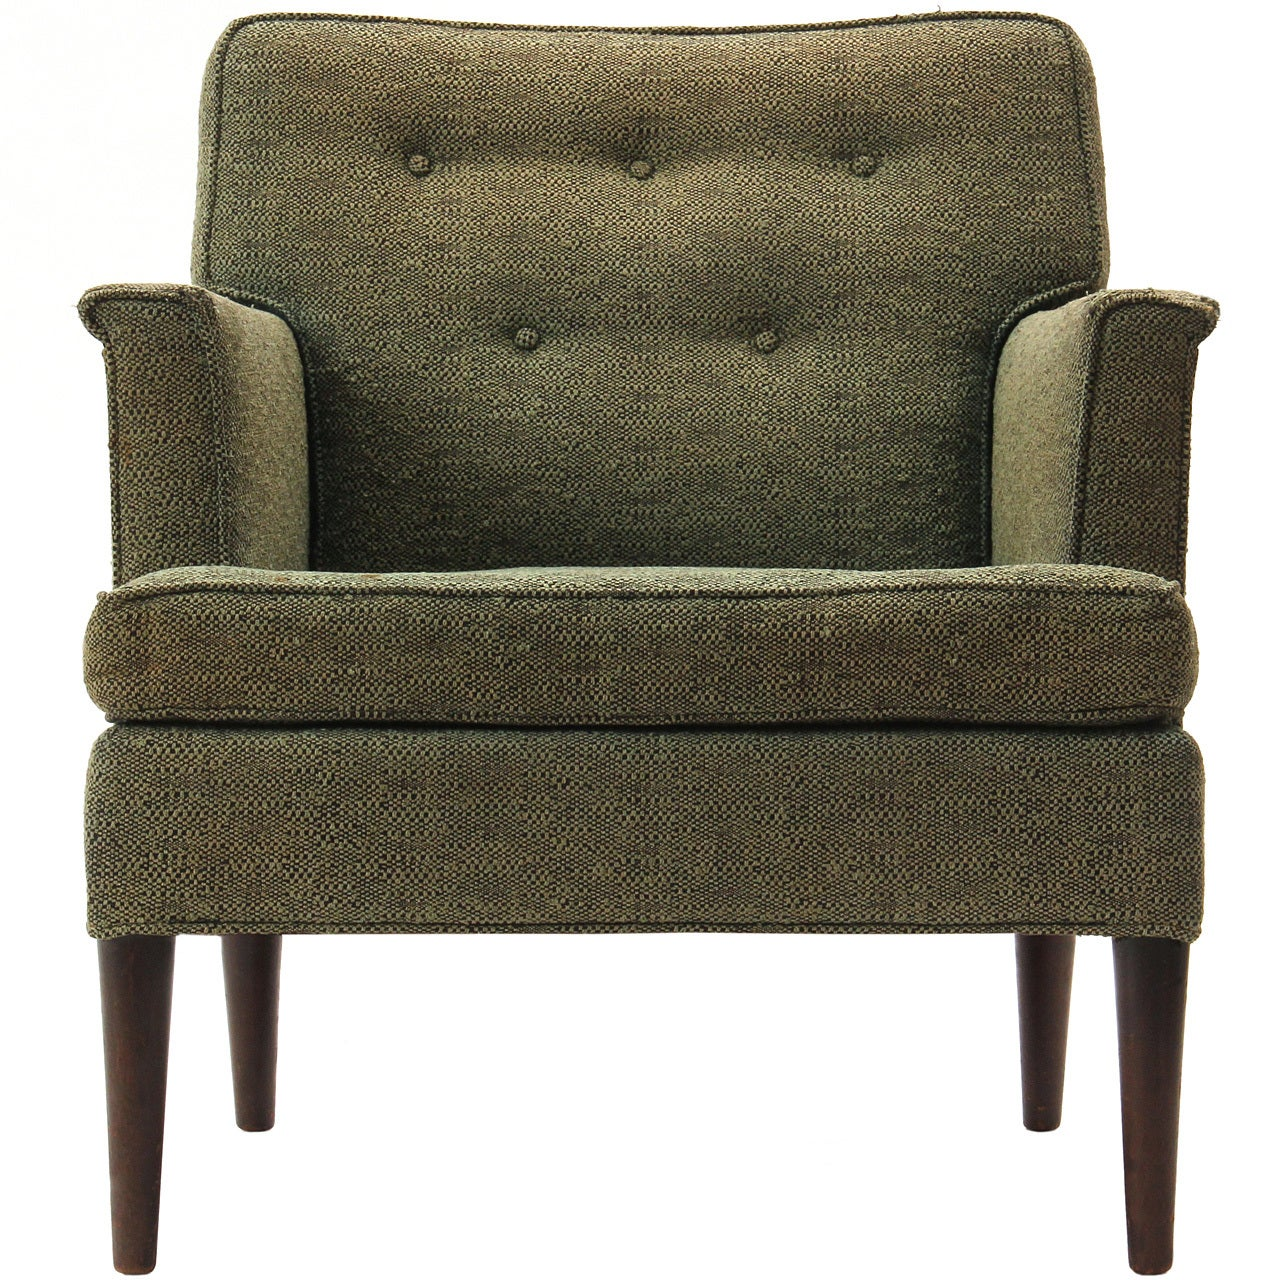 1950s Lounge Chair by Edward Wormley for Dunbar